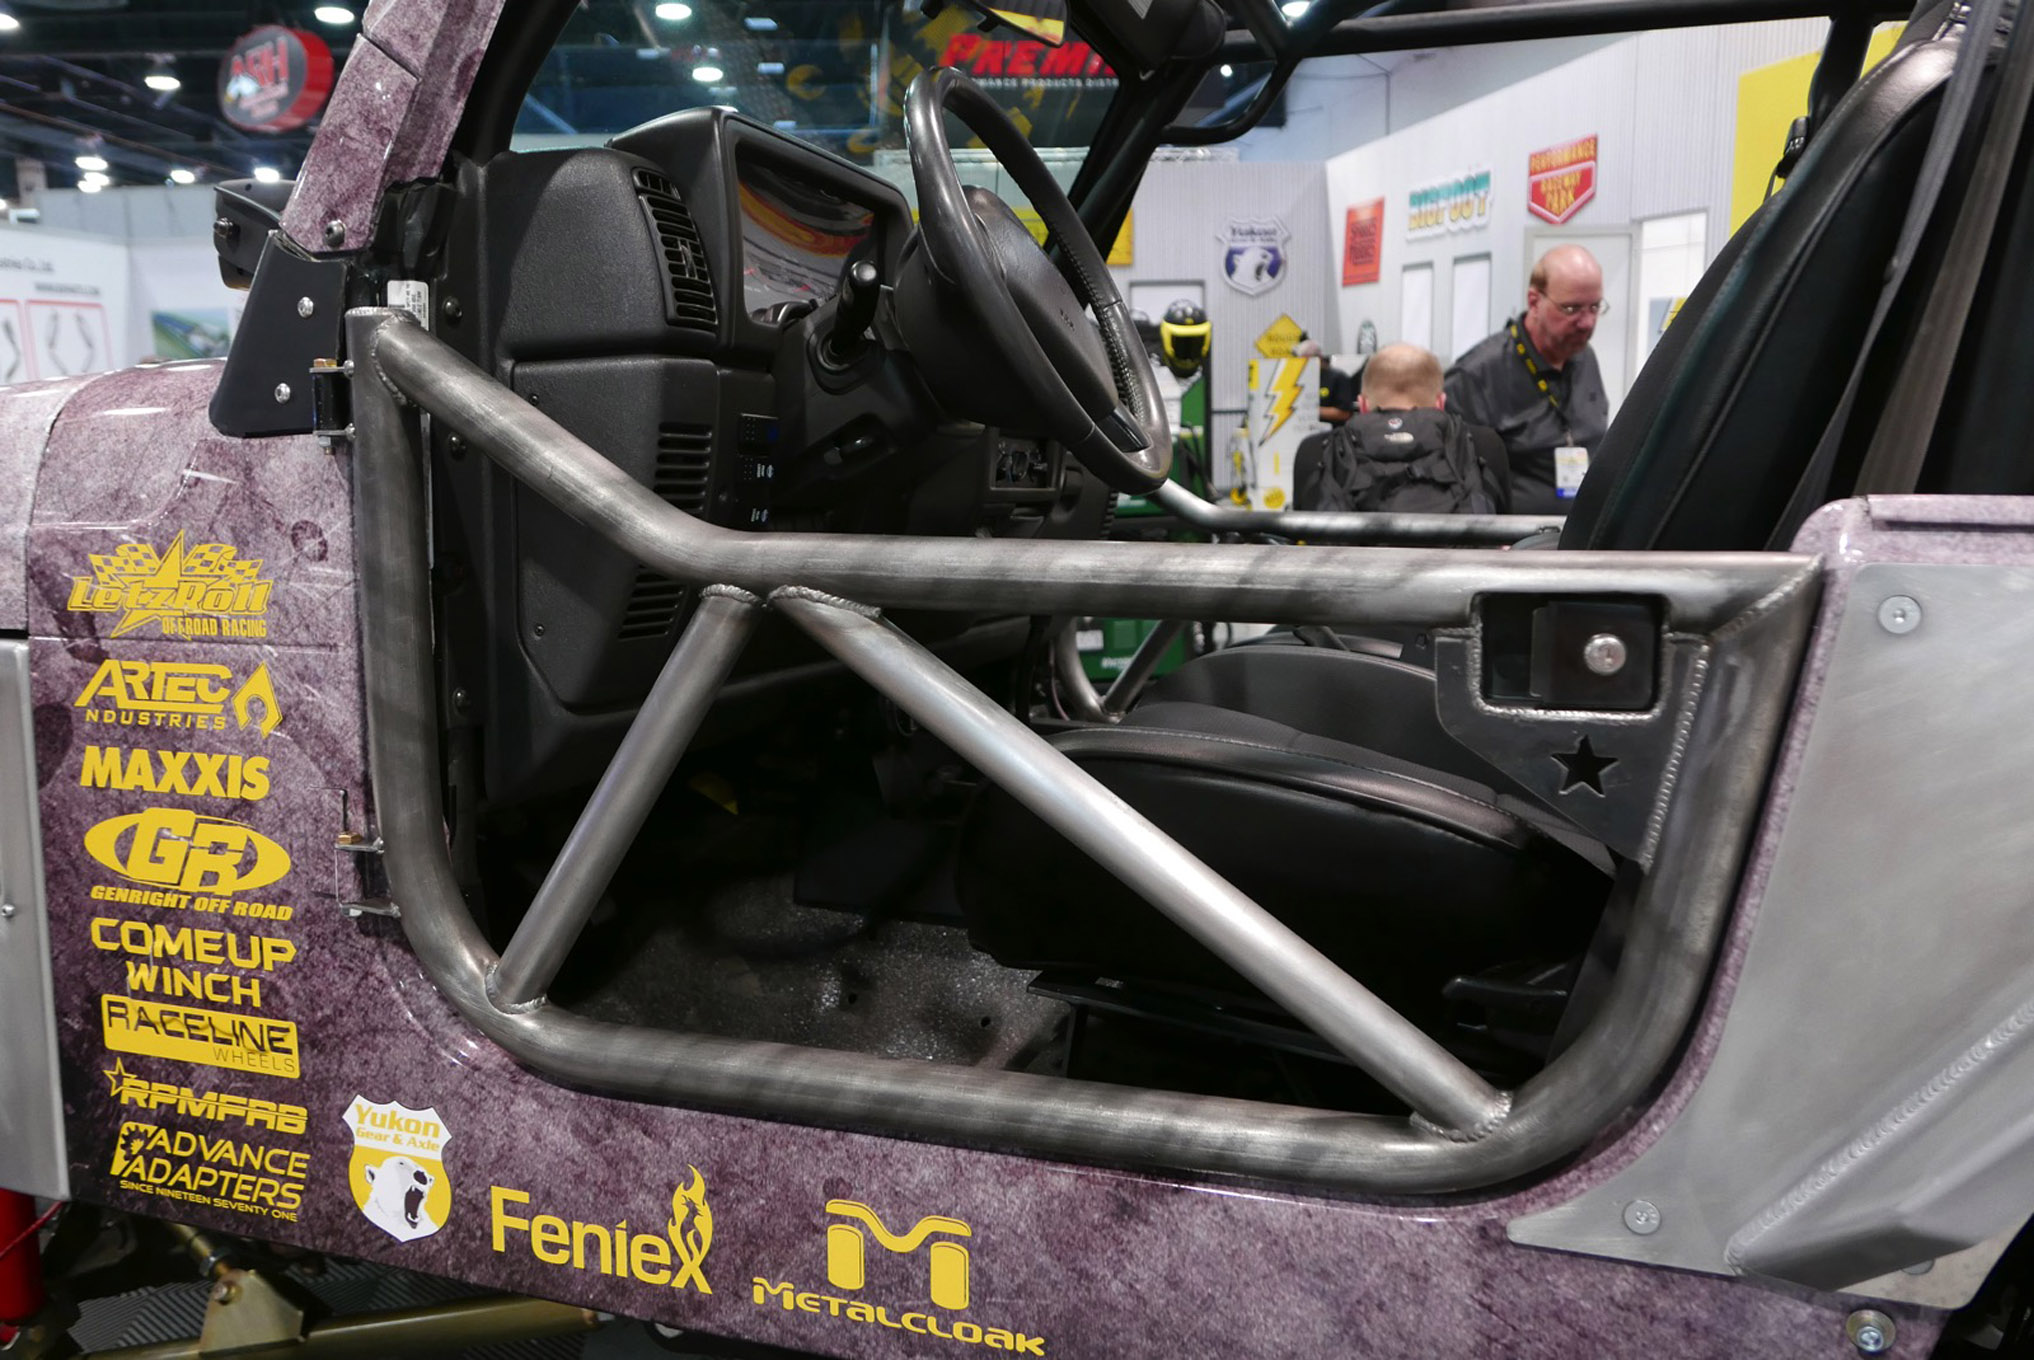 088 sema 2017 day 1 south upper hall gallery photos